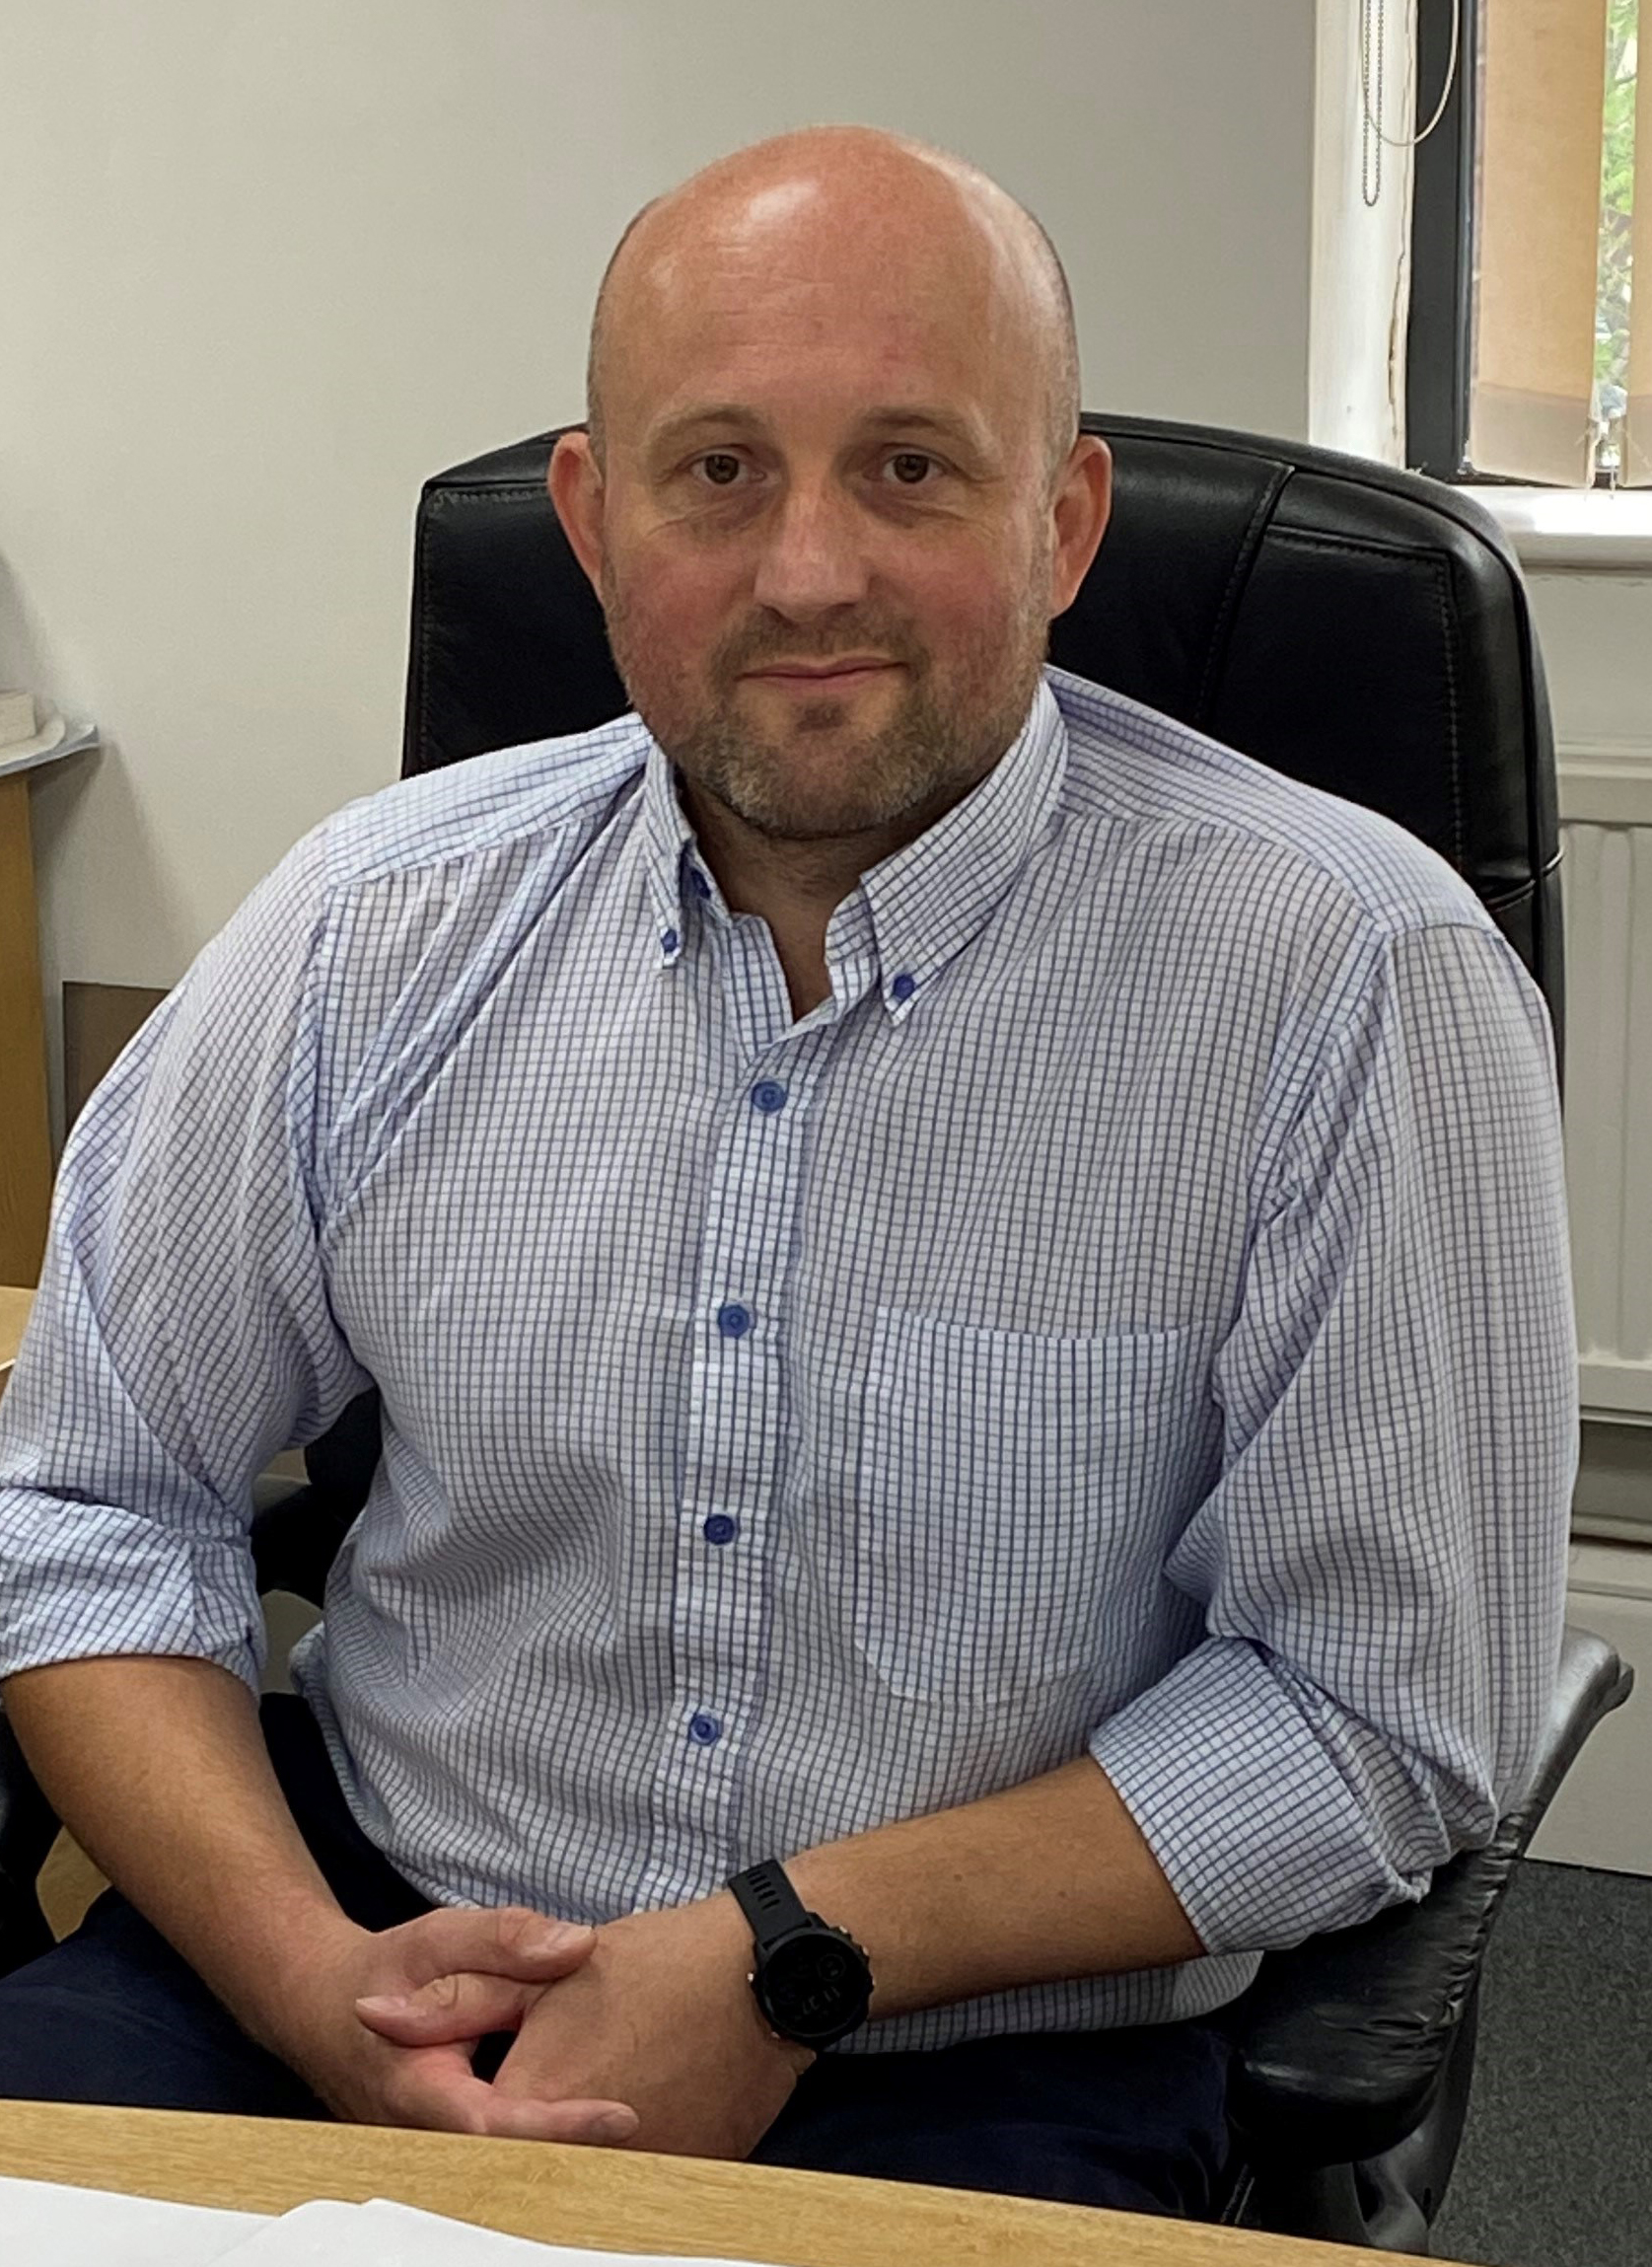 CKF Systems are delighted to welcome Scott Wells to the team